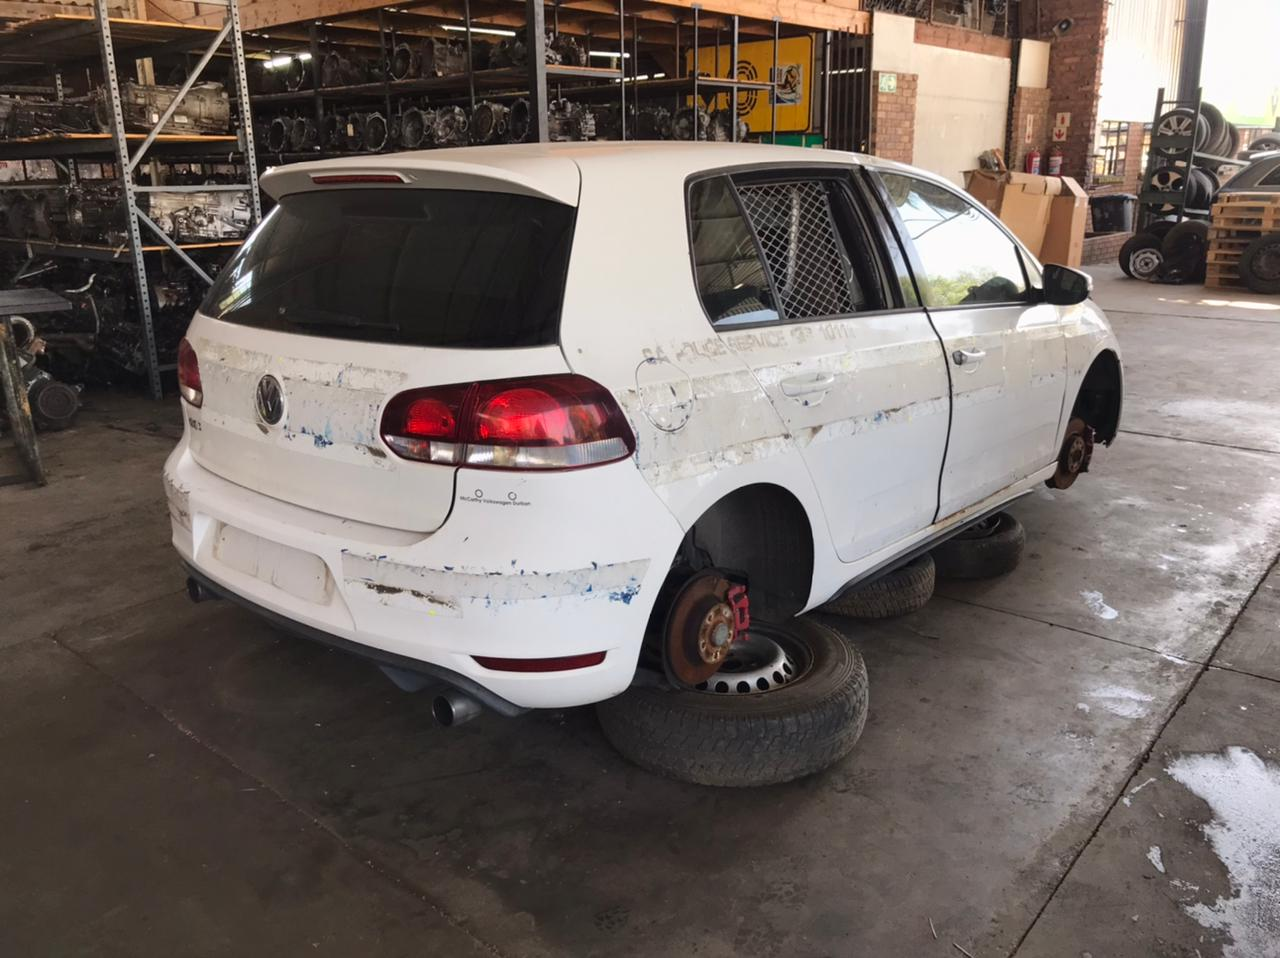 Volkswagen Golf 6 GTI 2.0 TSI Stripping for Used Spares Parts